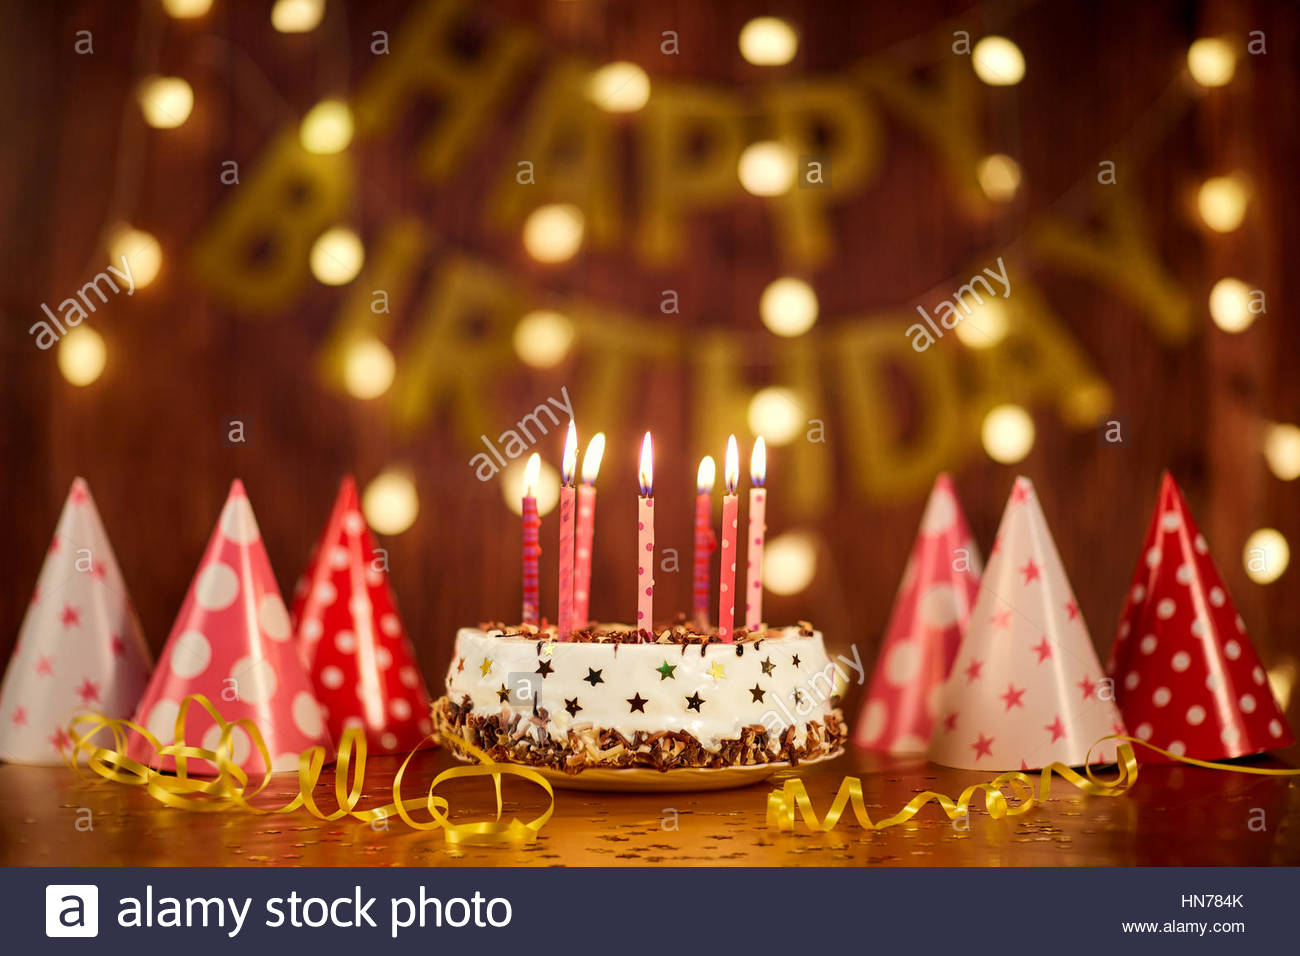 picture of birthday cake and candles ; happy-birthday-cake-with-candles-on-the-background-of-garlands-a-HN784K